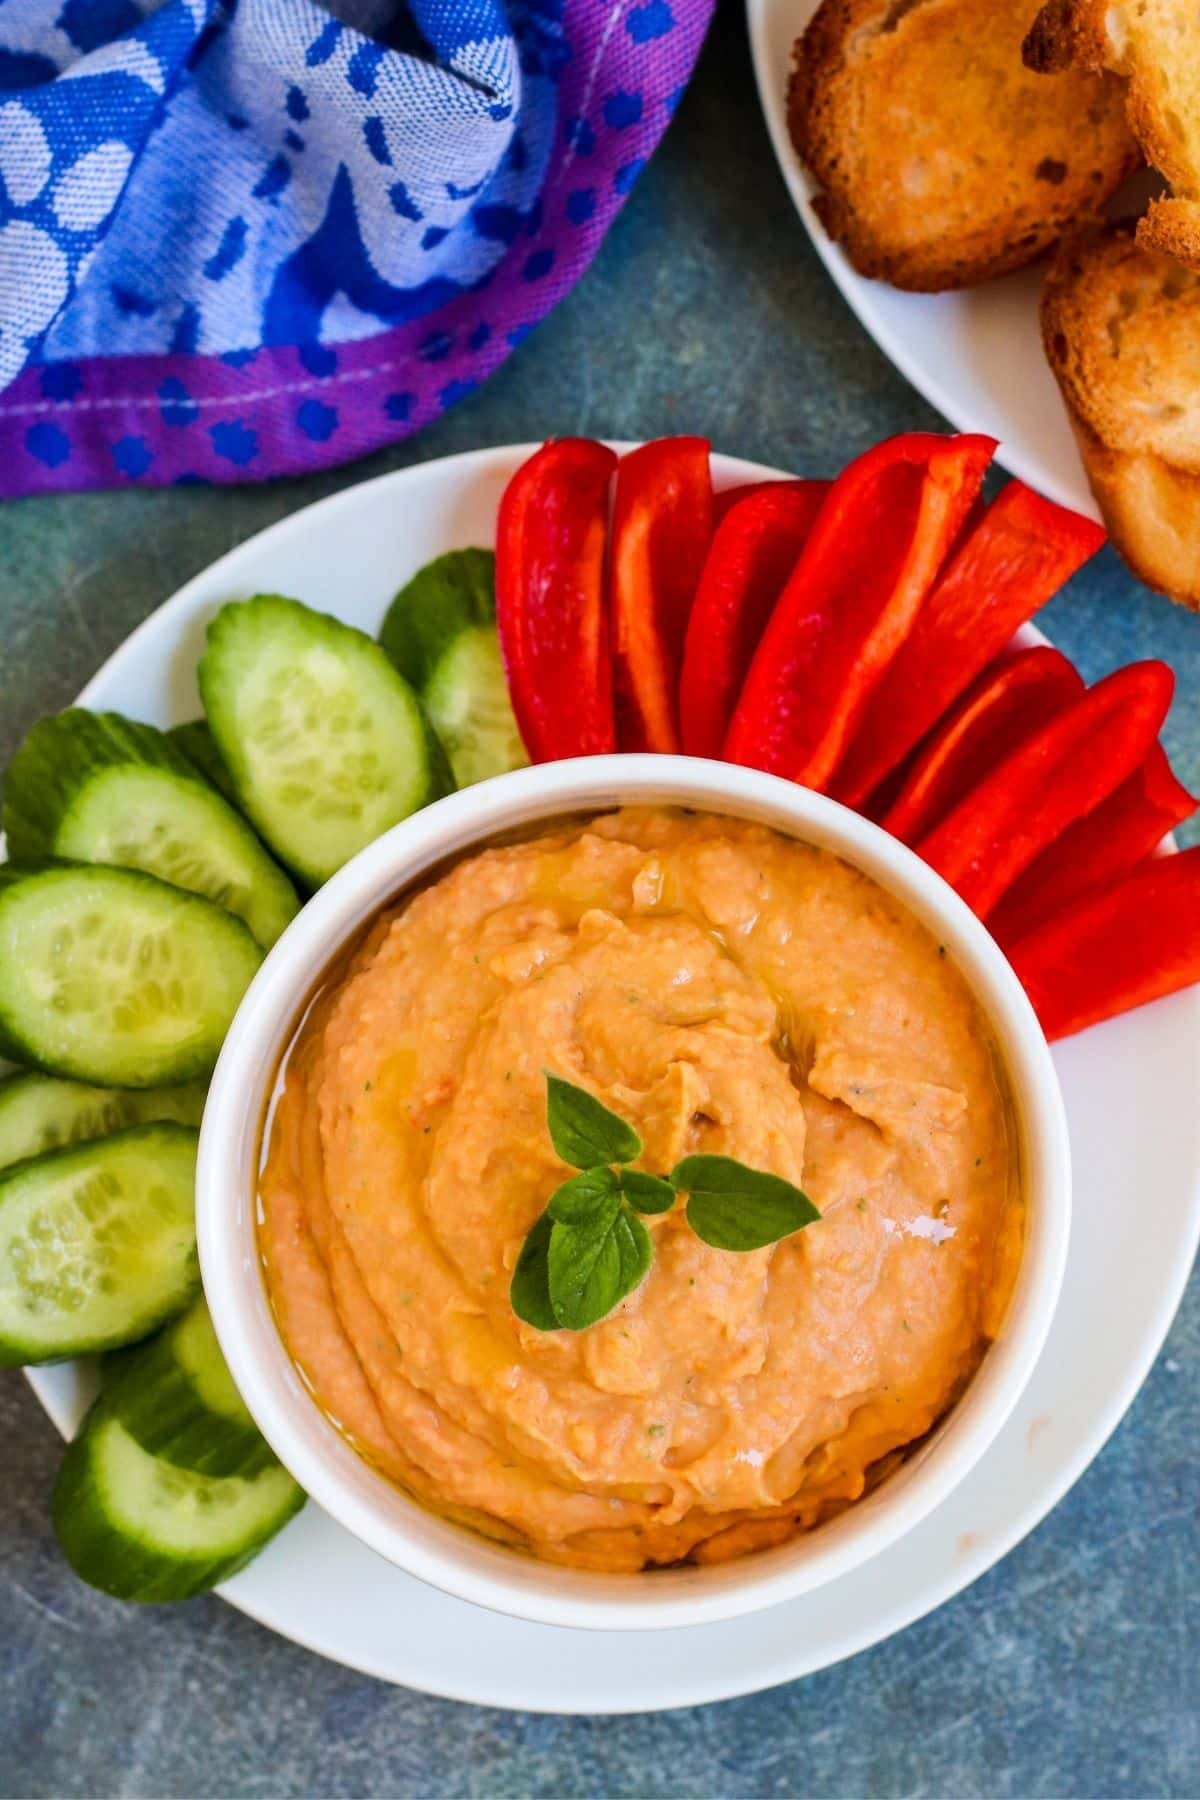 Plate with cucumber slices and strips of red bell pepper around a bowl of sun-dried tomato dip